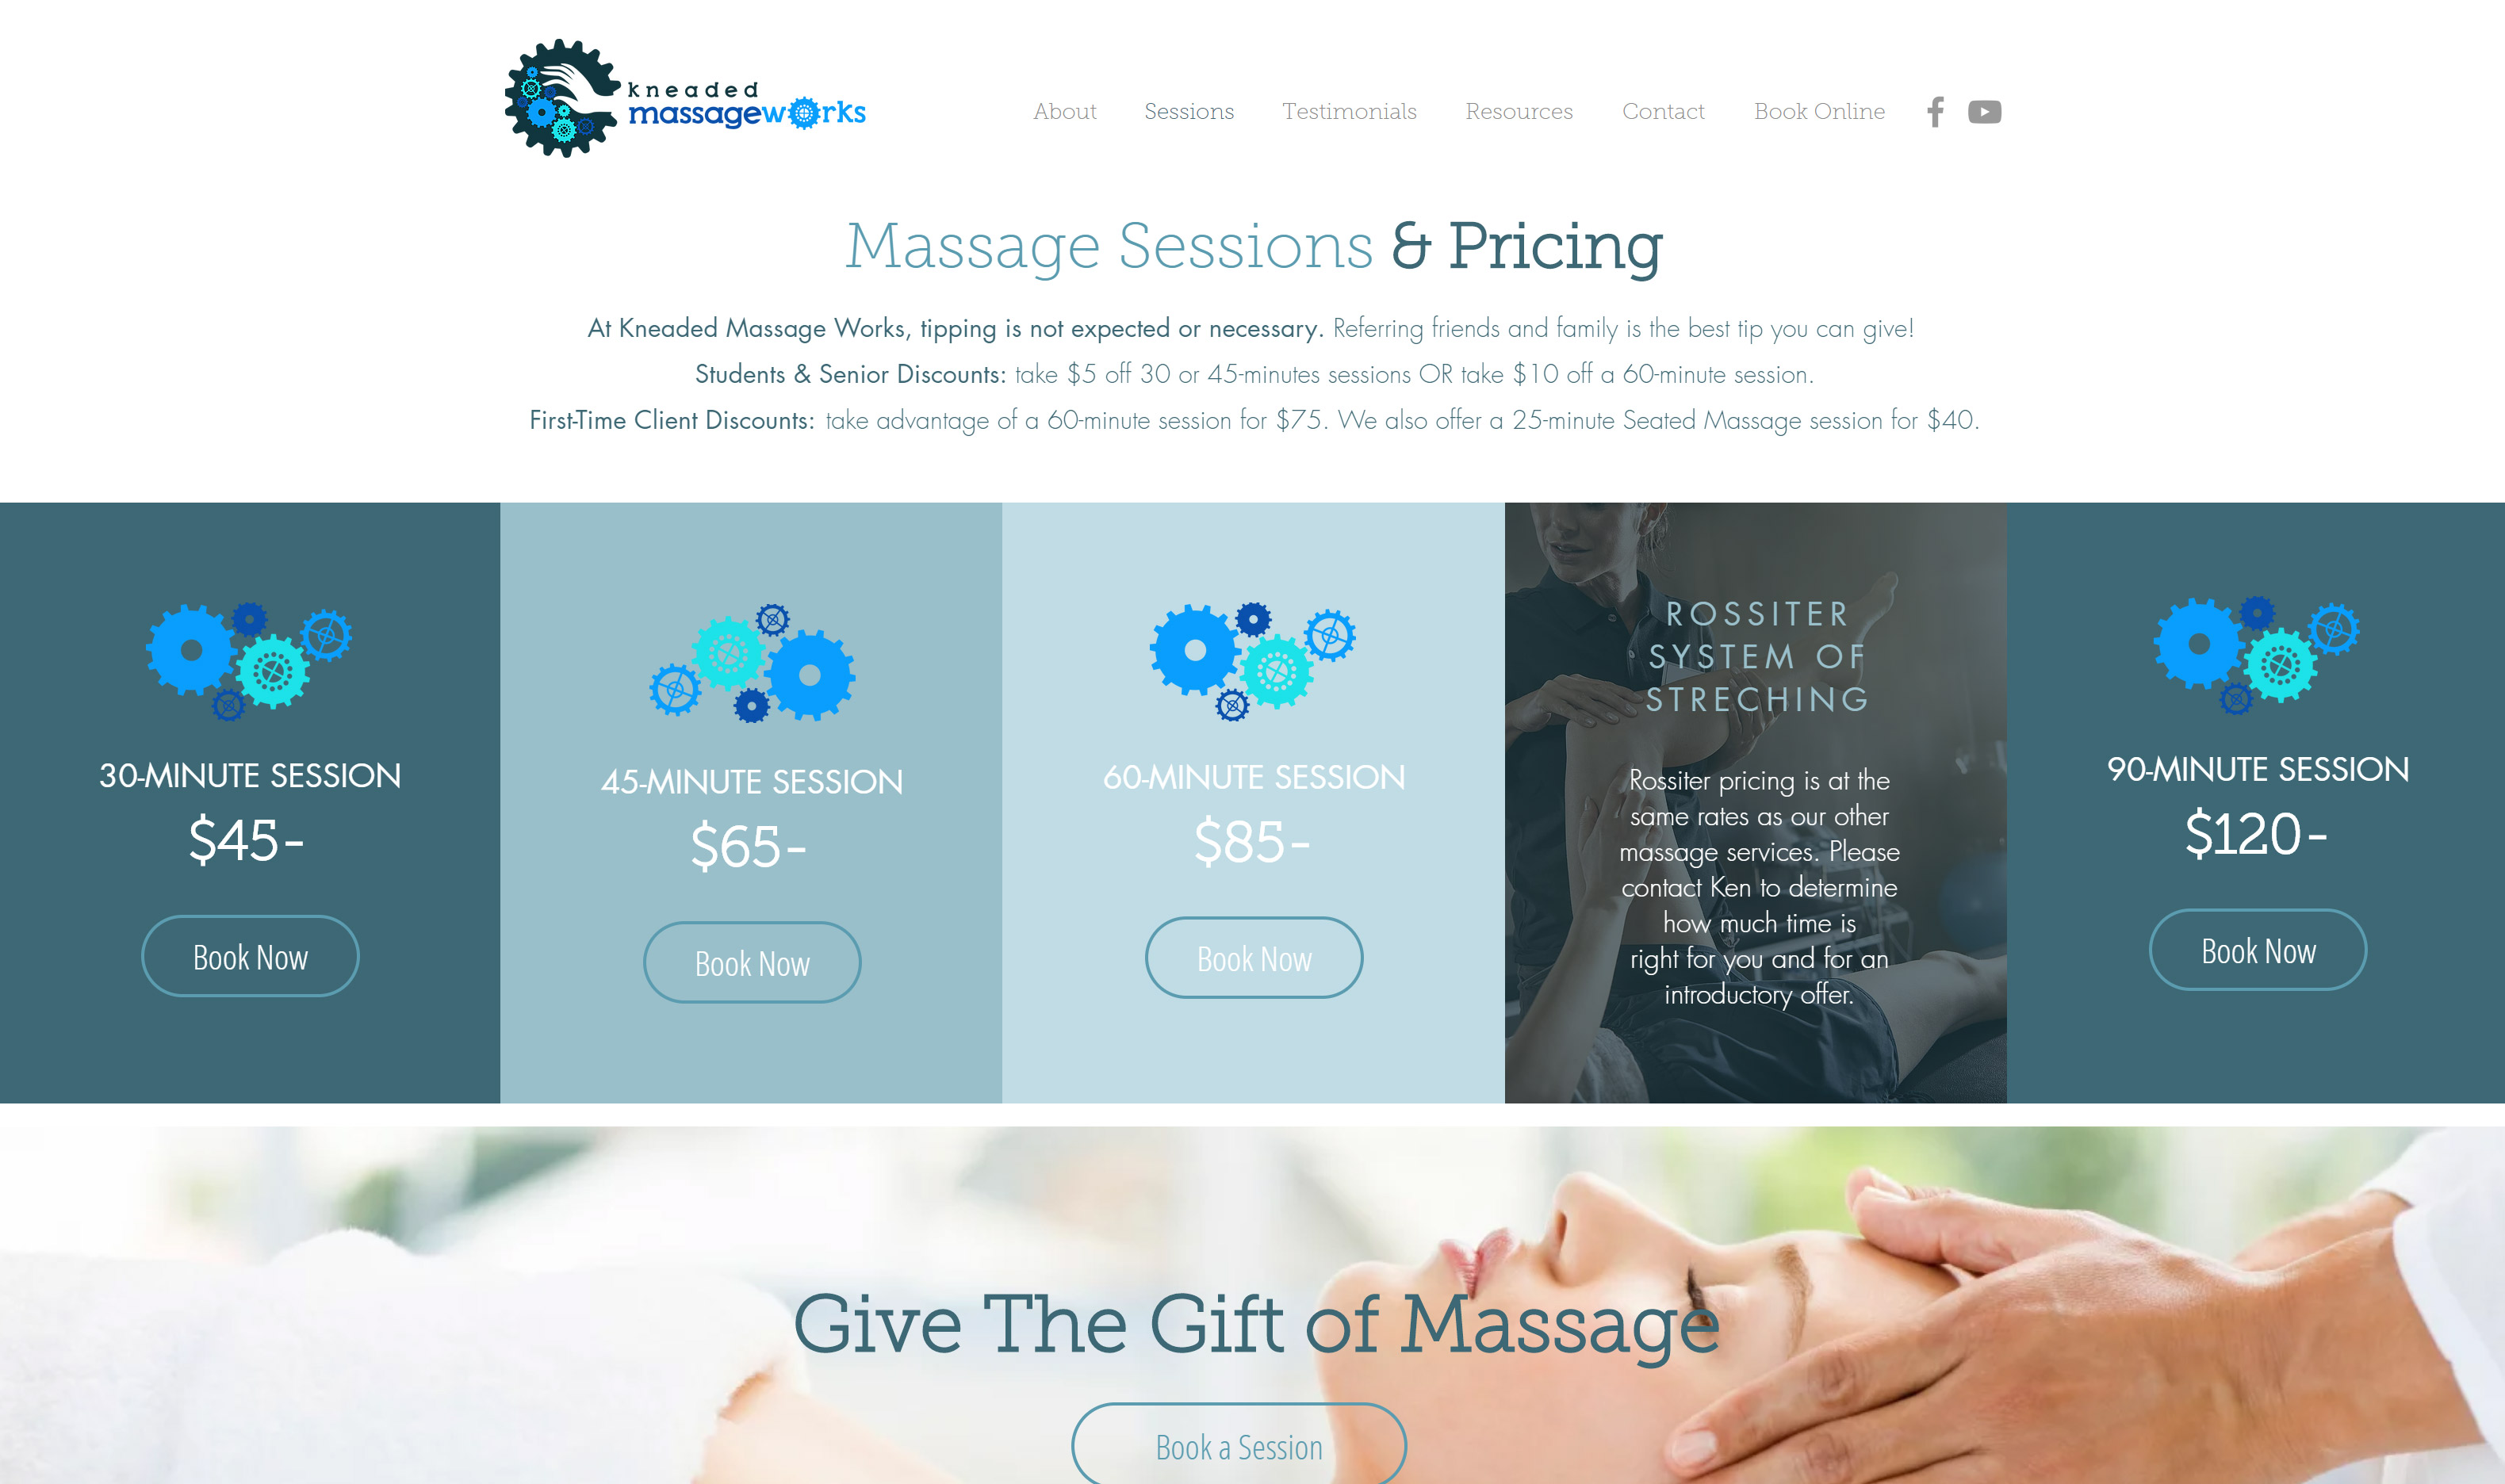 Sarah-Cas-Branding-and-Design-Website-Design-Kneaded-Massage-Works-1